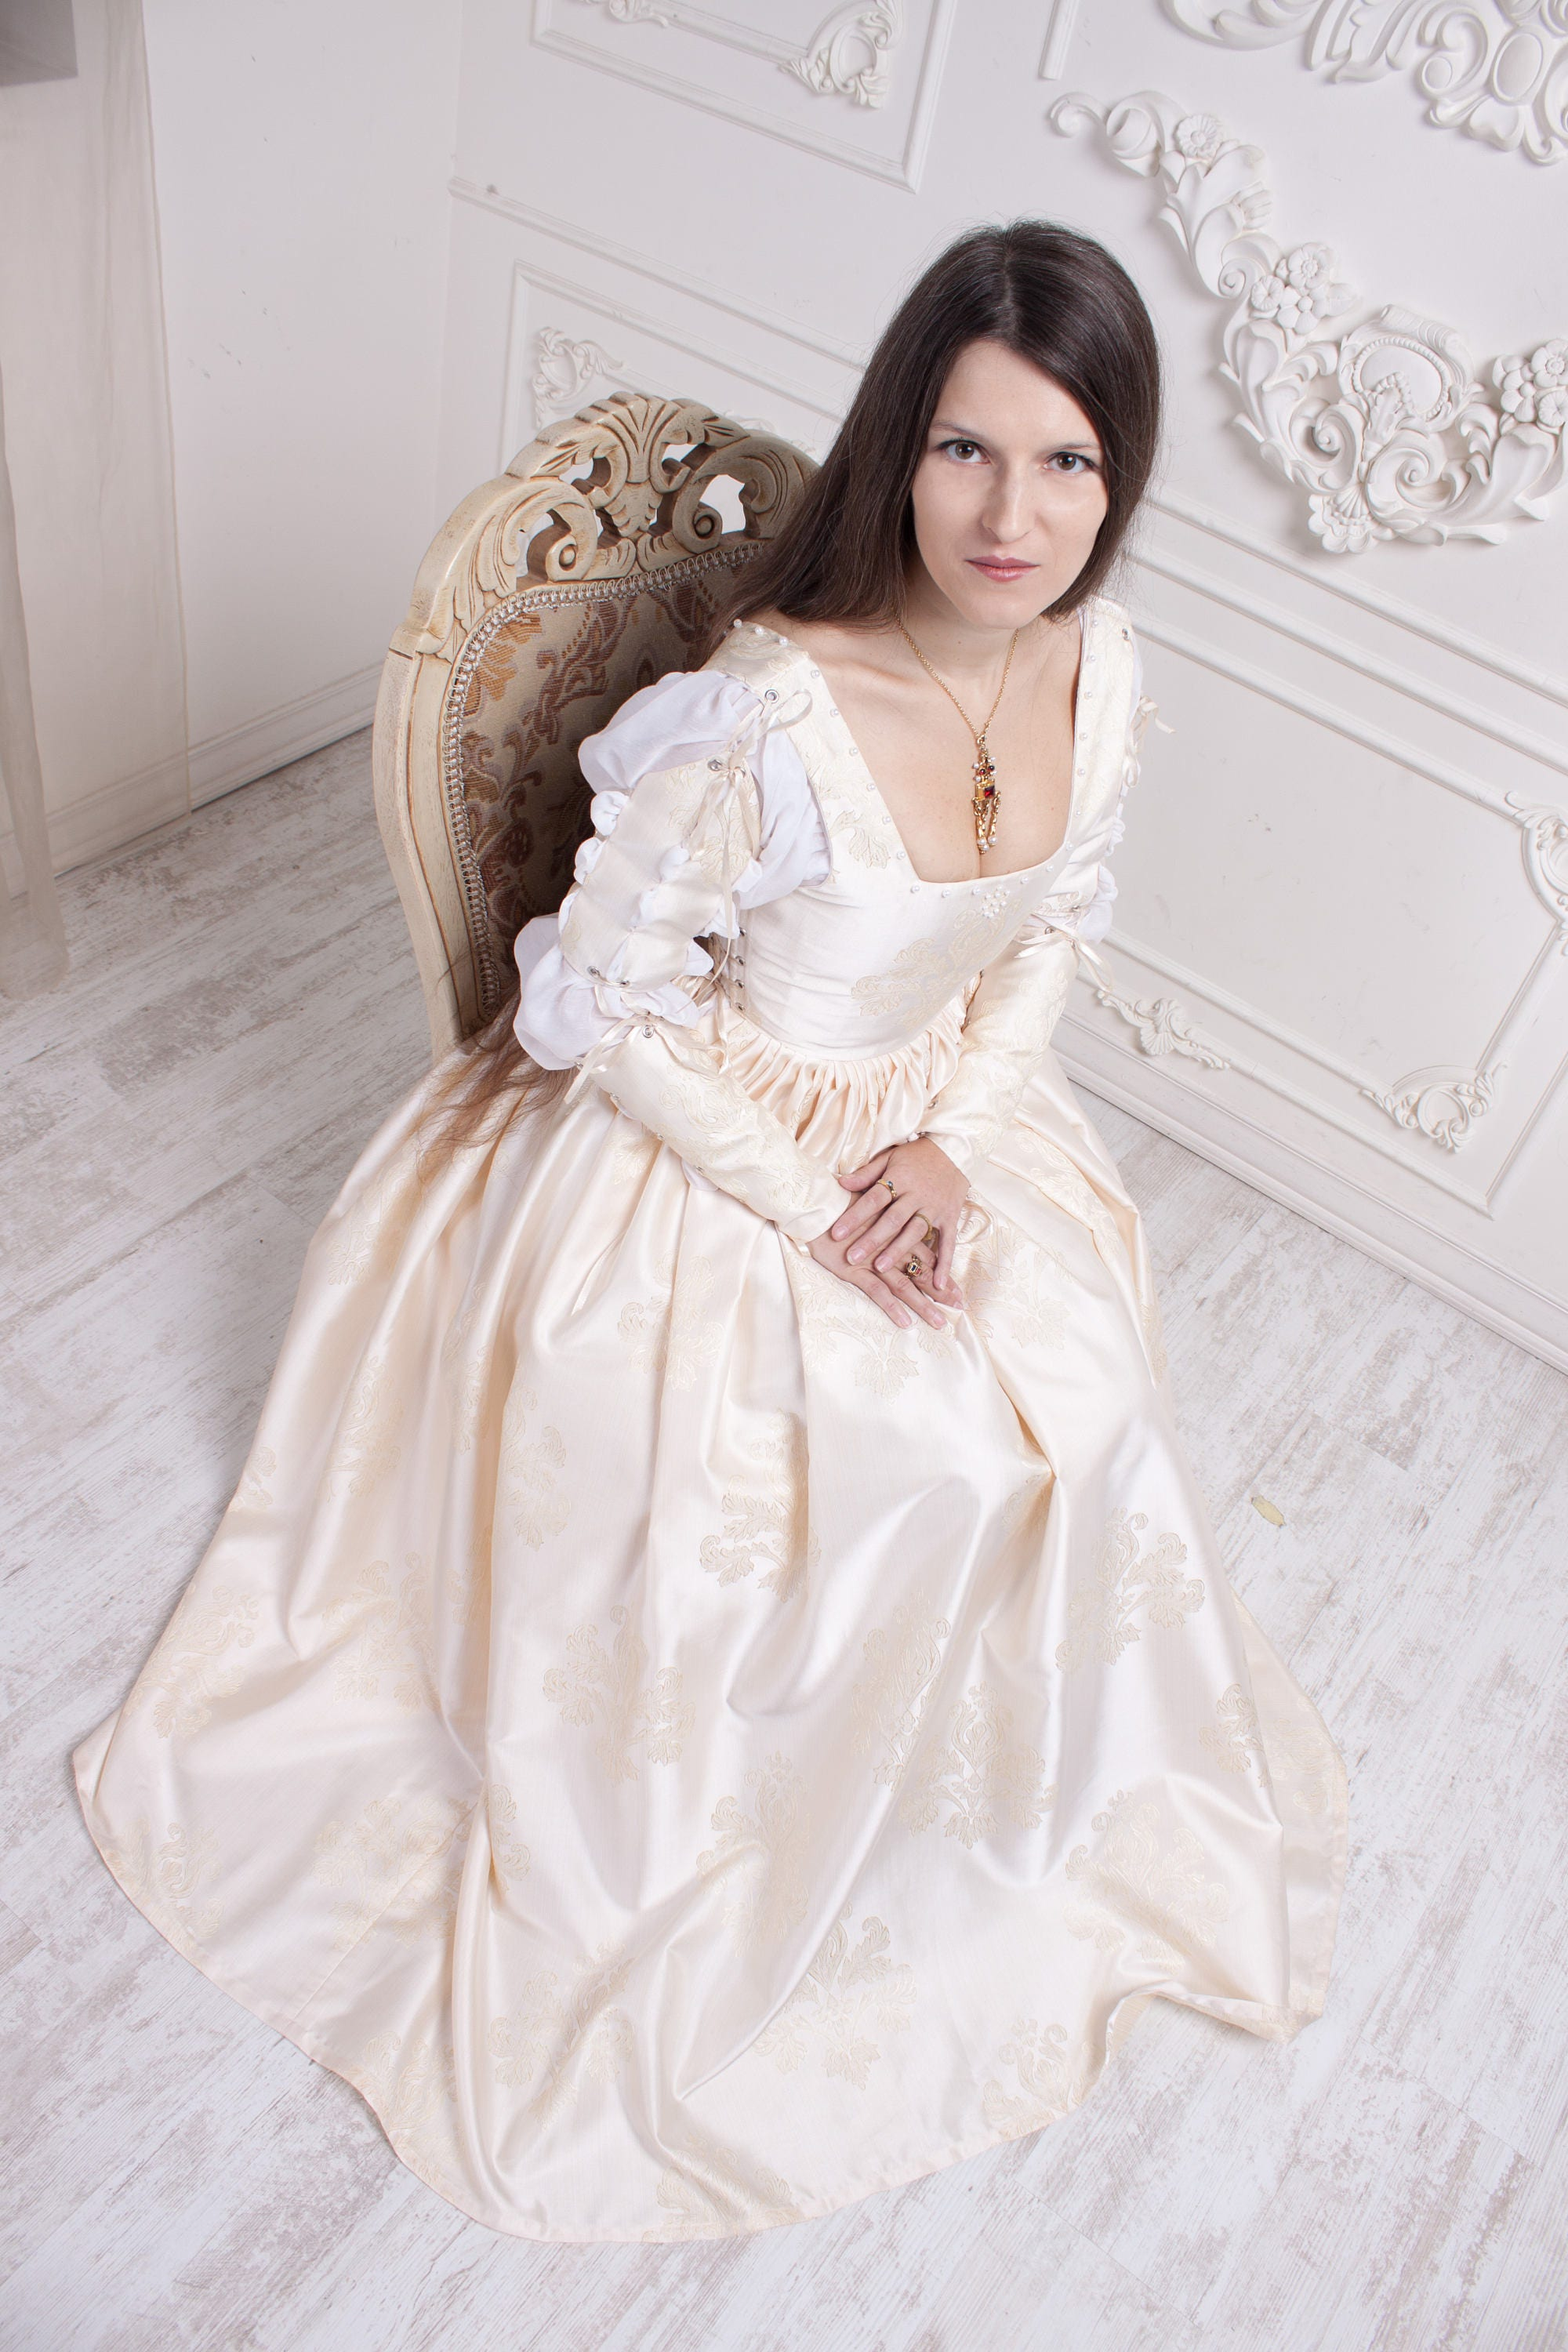 Renaissance wedding dress ivory 15th century italian gown for Wedding dresses made in italy